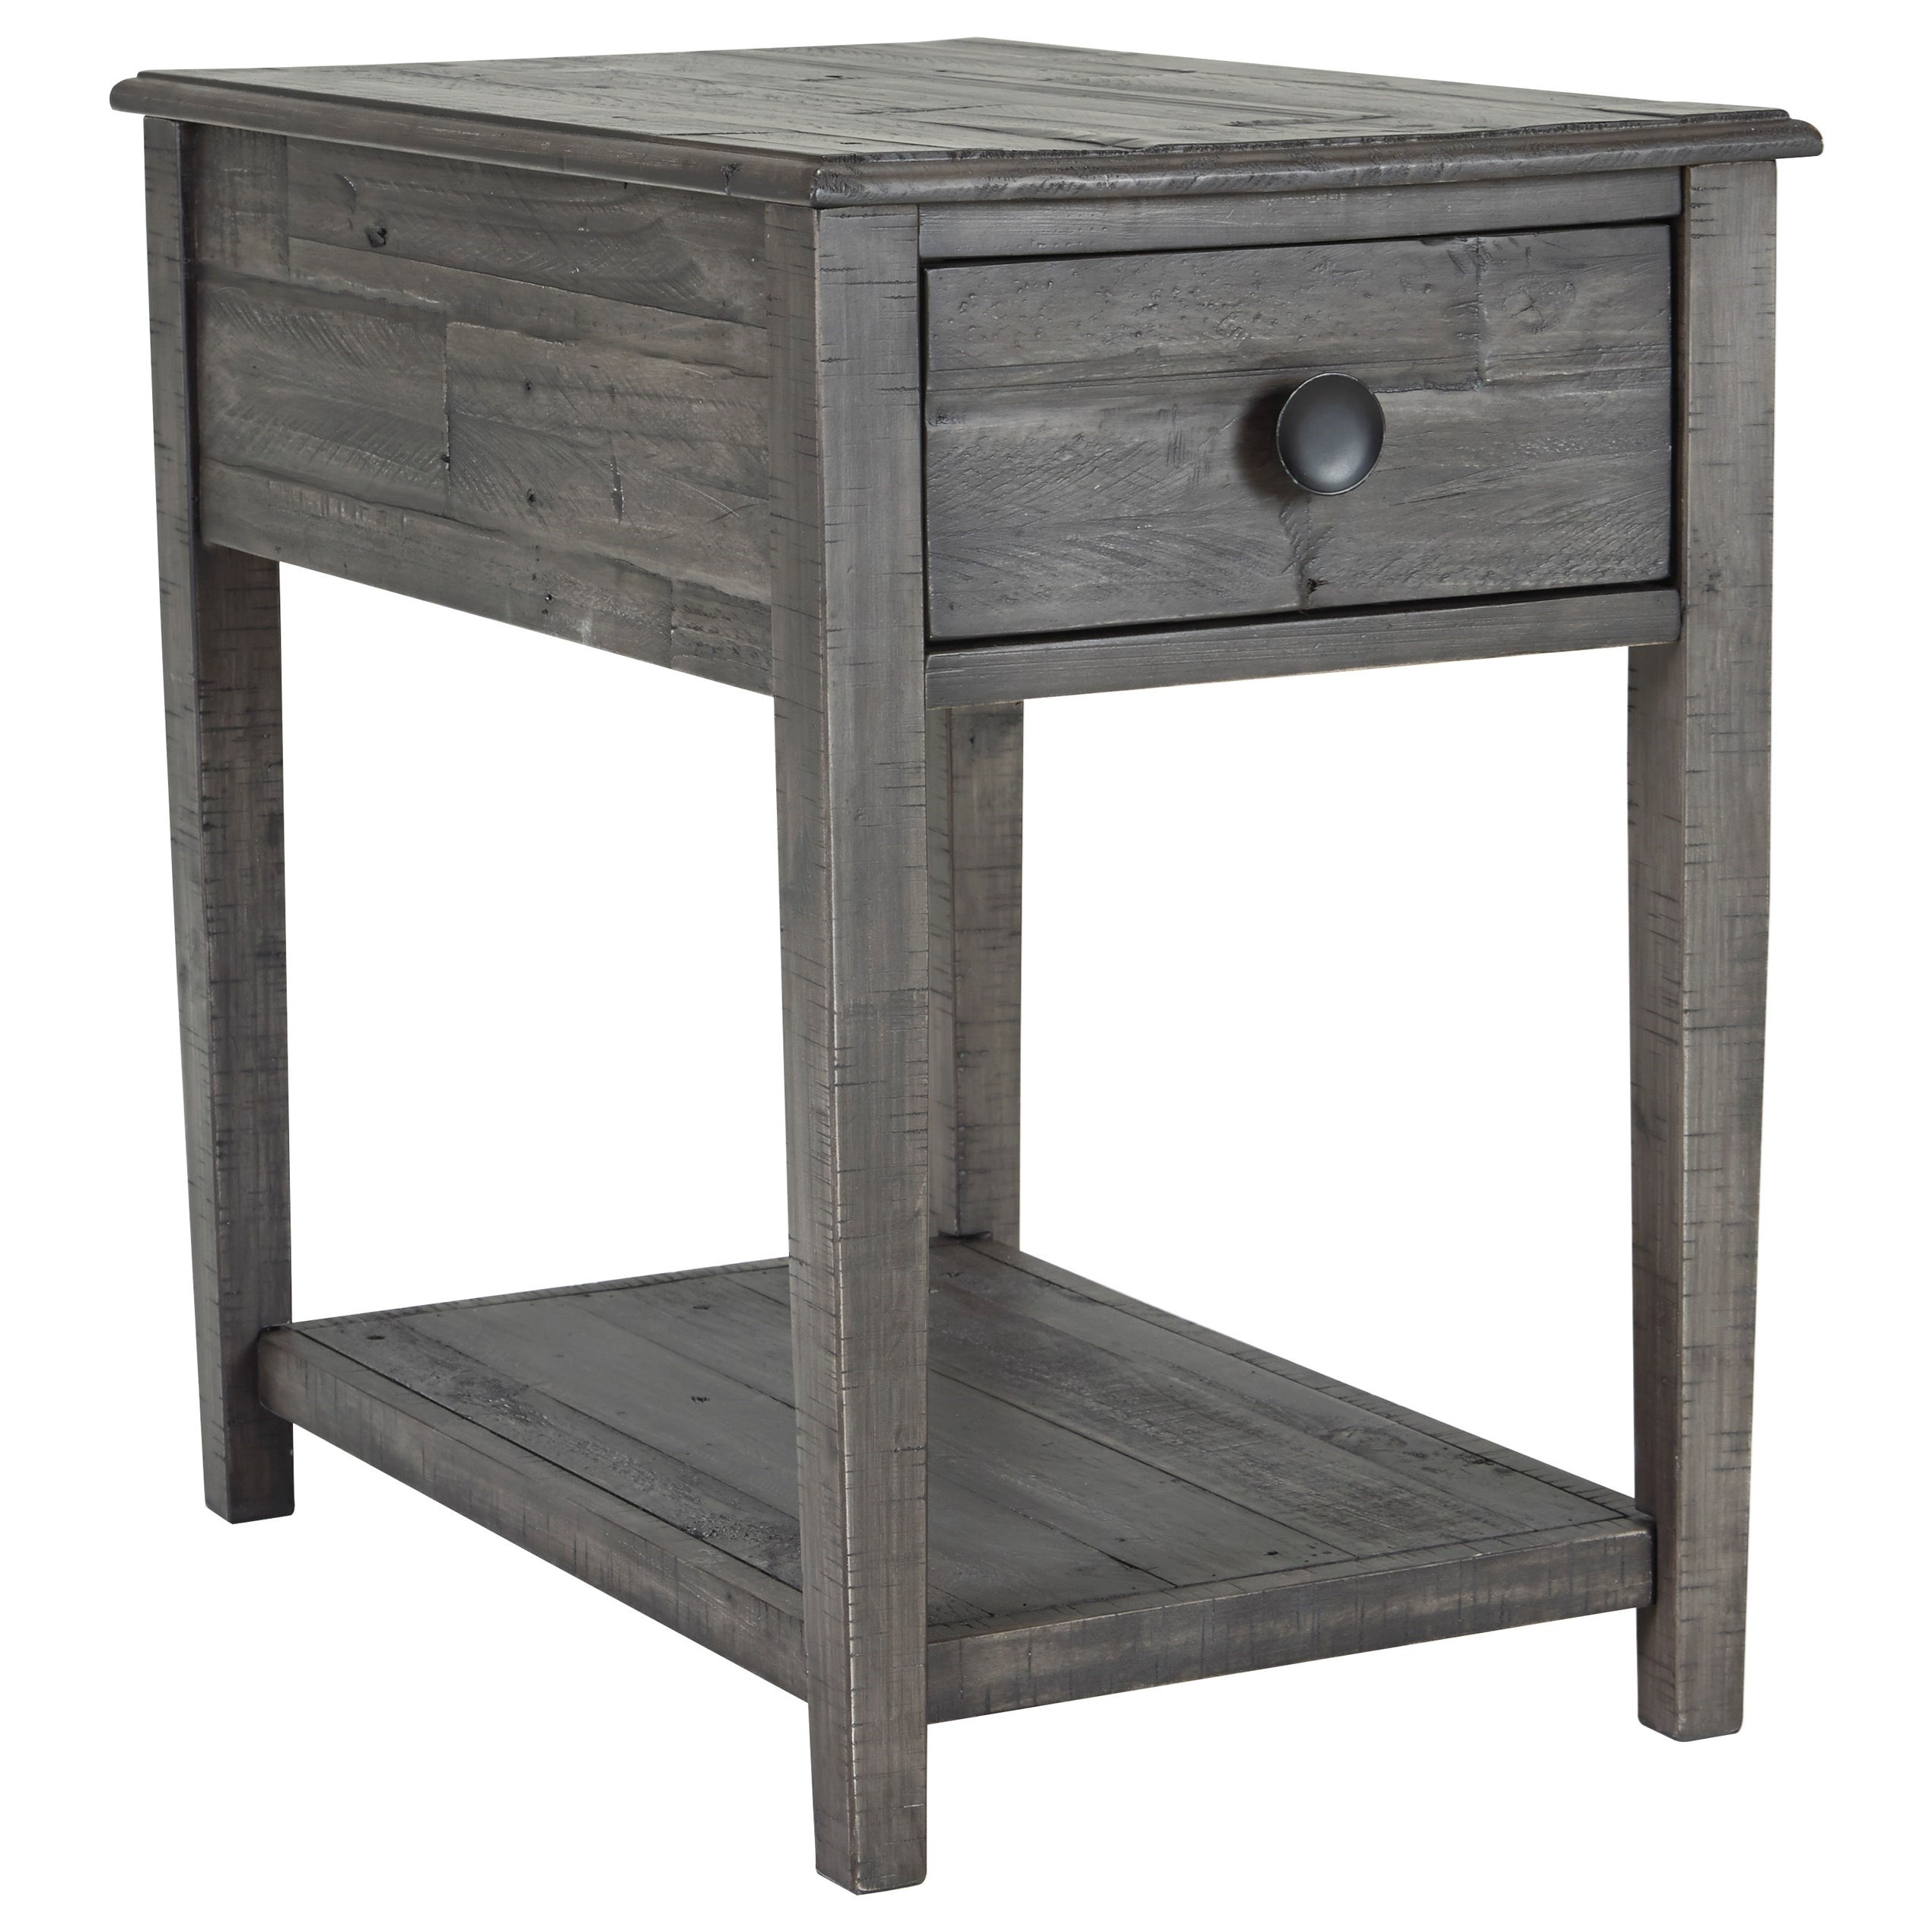 Borlofield Rectangular End Table by Signature Design by Ashley at Zak's Warehouse Clearance Center